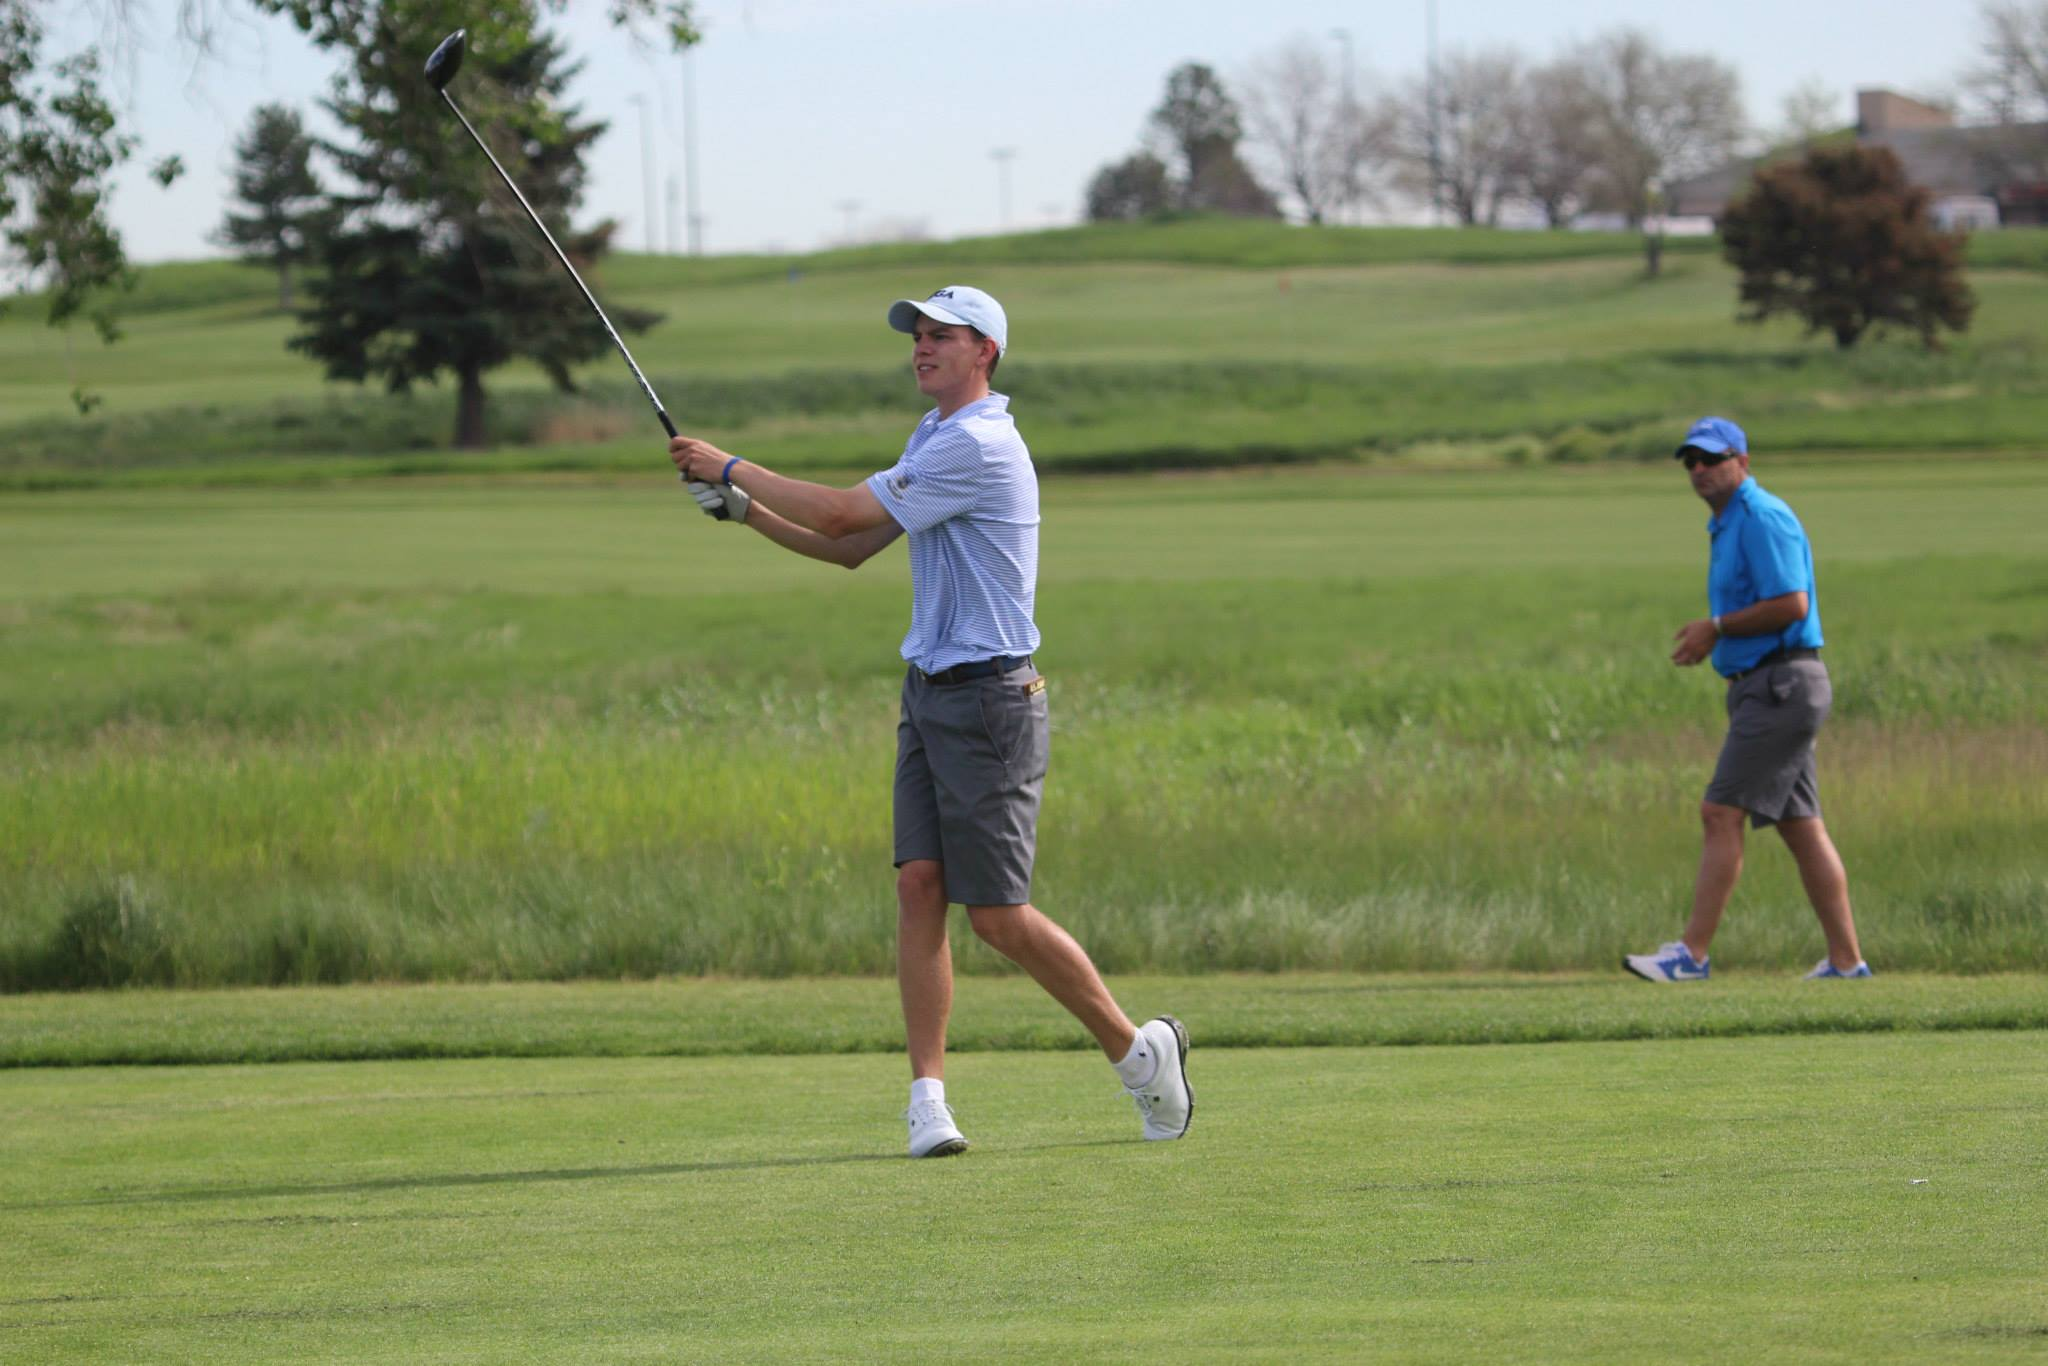 Taking It to the Next Level - At least 25 Colorado high school seniors set to play college golf